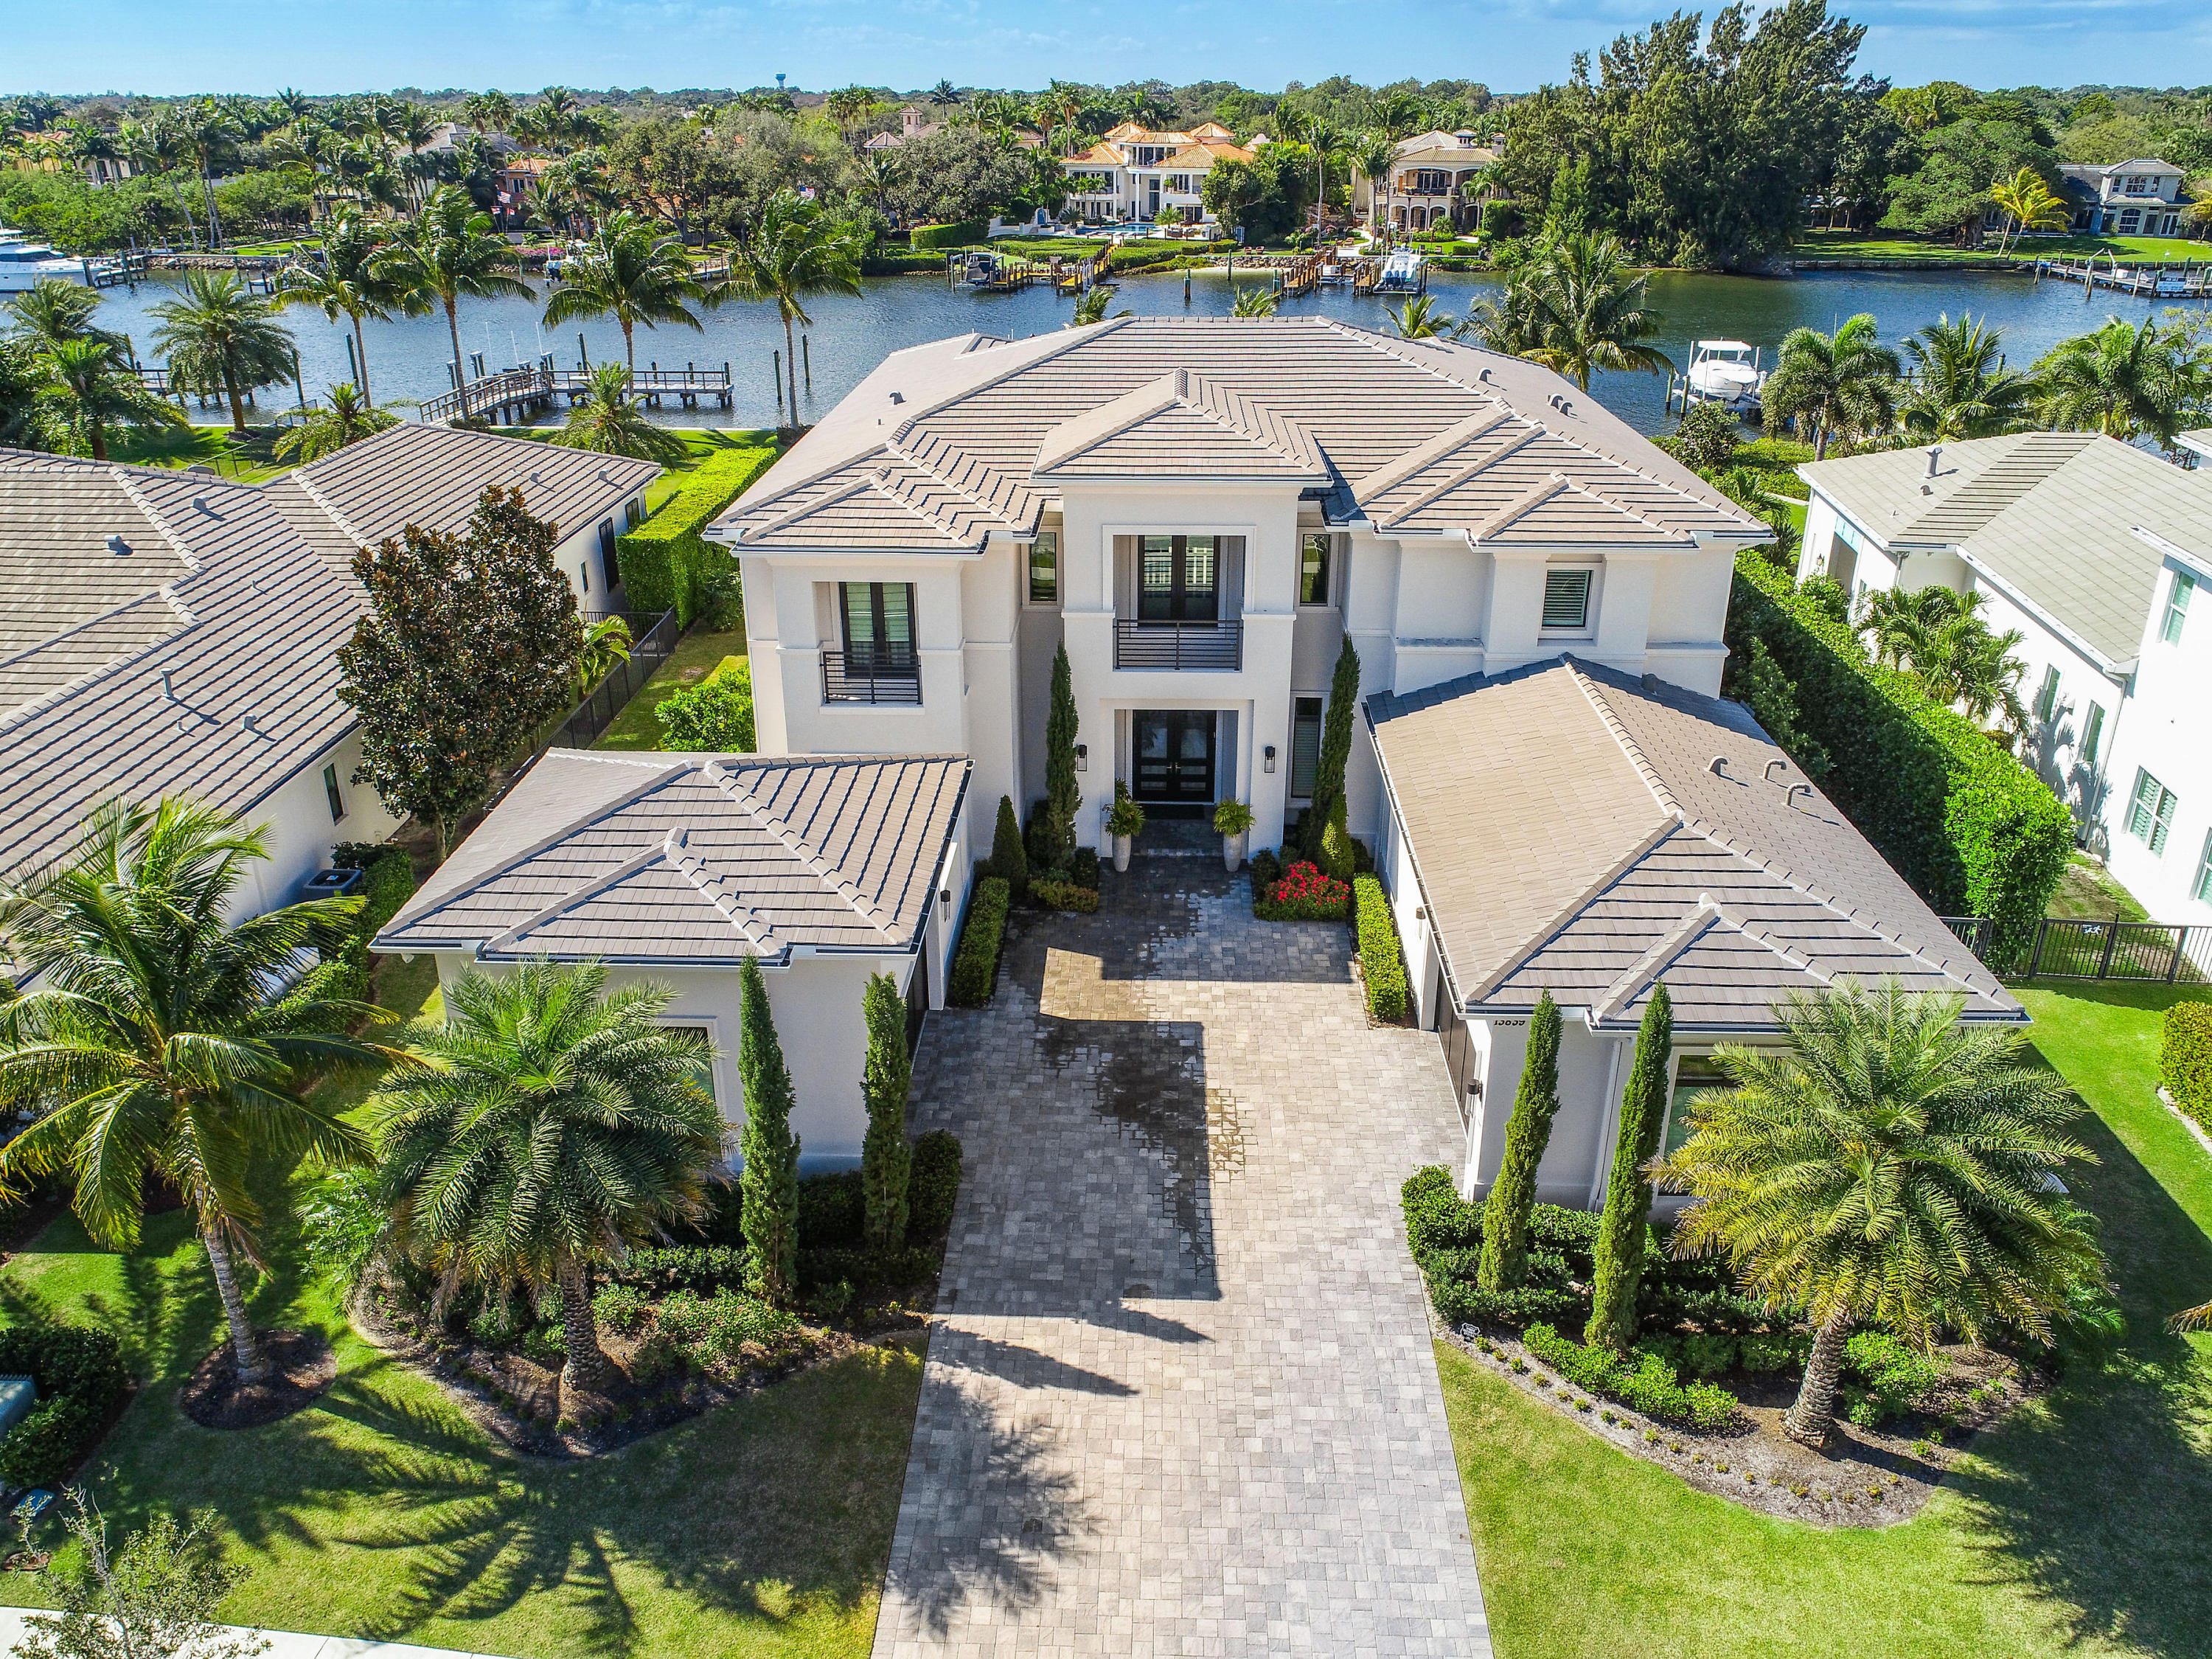 13839 Baycliff Drive, North Palm Beach, Florida 33408, 5 Bedrooms Bedrooms, ,7.1 BathroomsBathrooms,A,Single family,Baycliff,RX-10597605